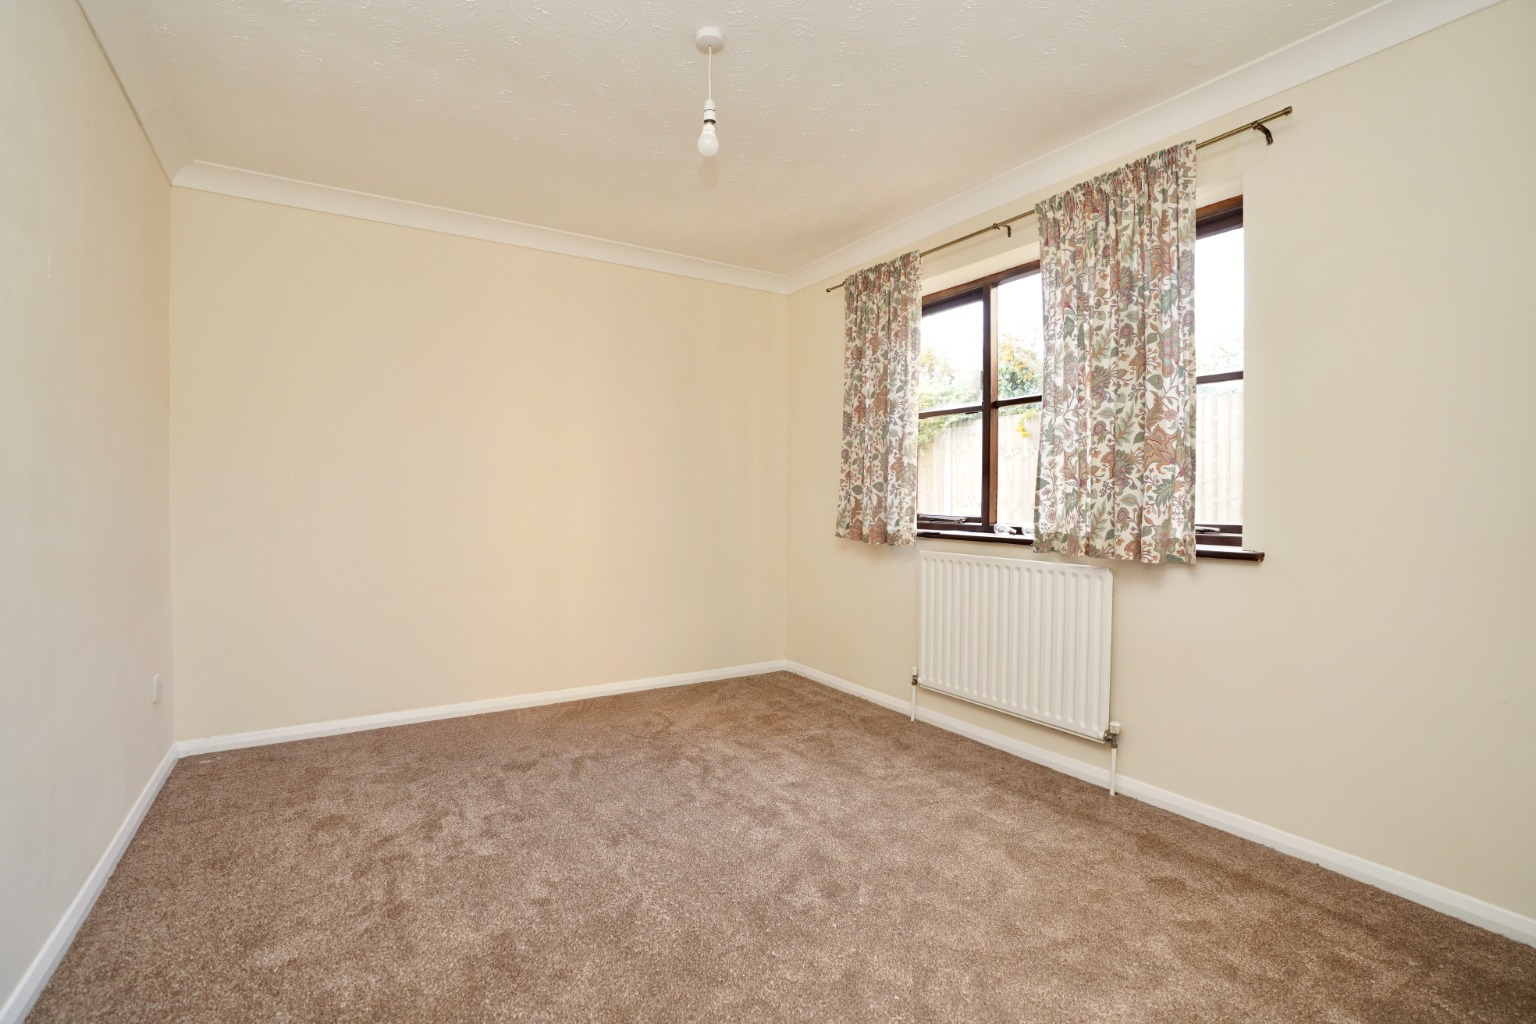 2 bed ground floor maisonette for sale in Rose Court, St. Neots Road, St. Neots  - Property Image 4